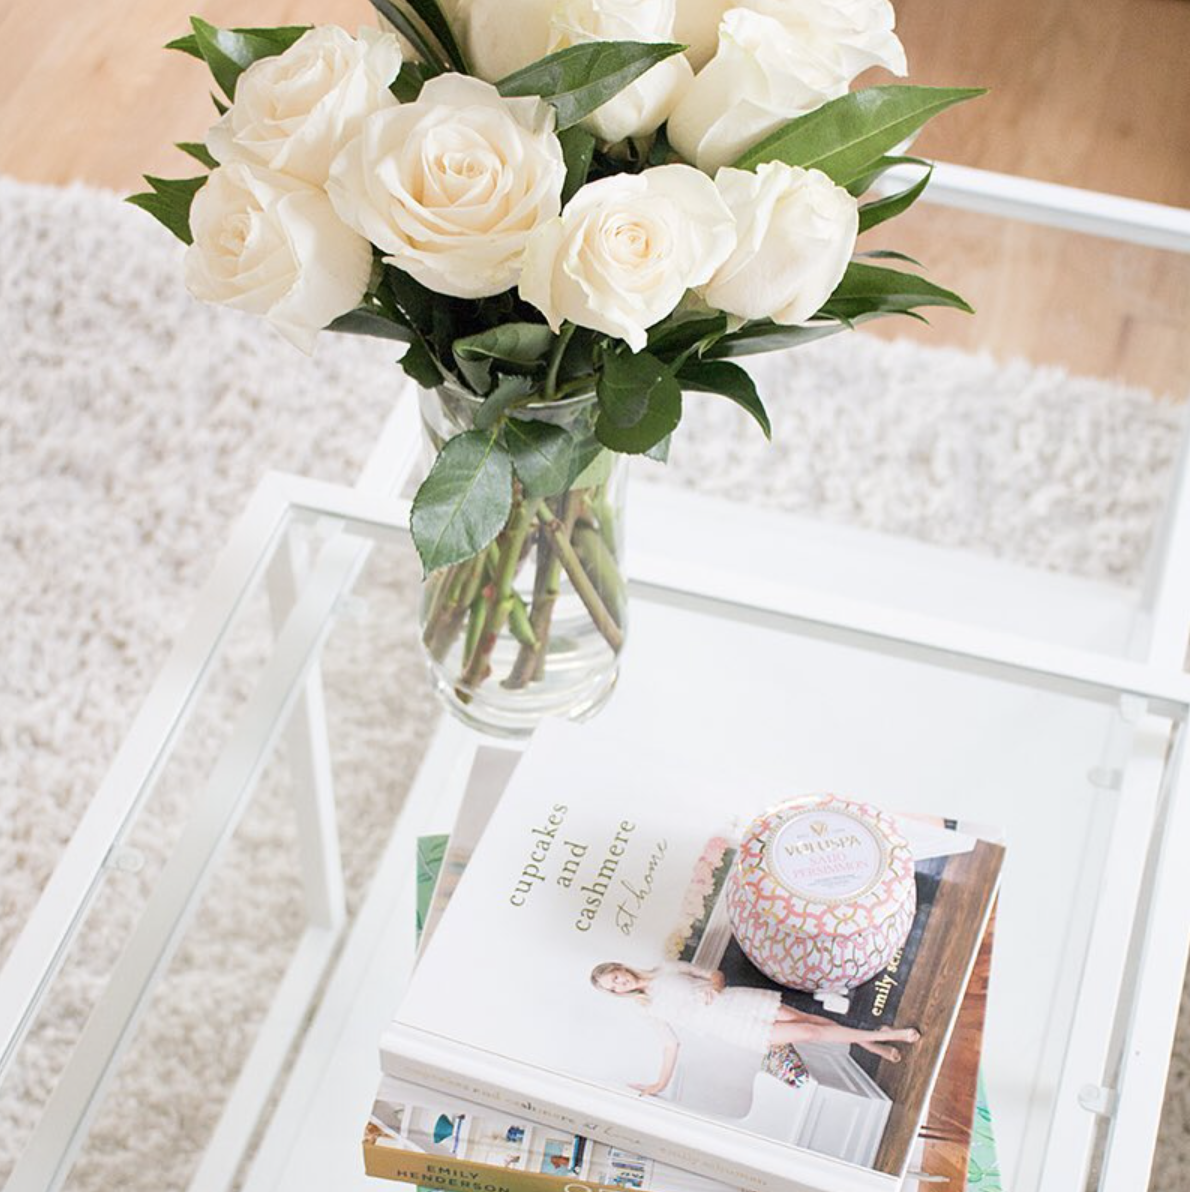 How To Keep Flowers Fresh Longer Tay Meets World